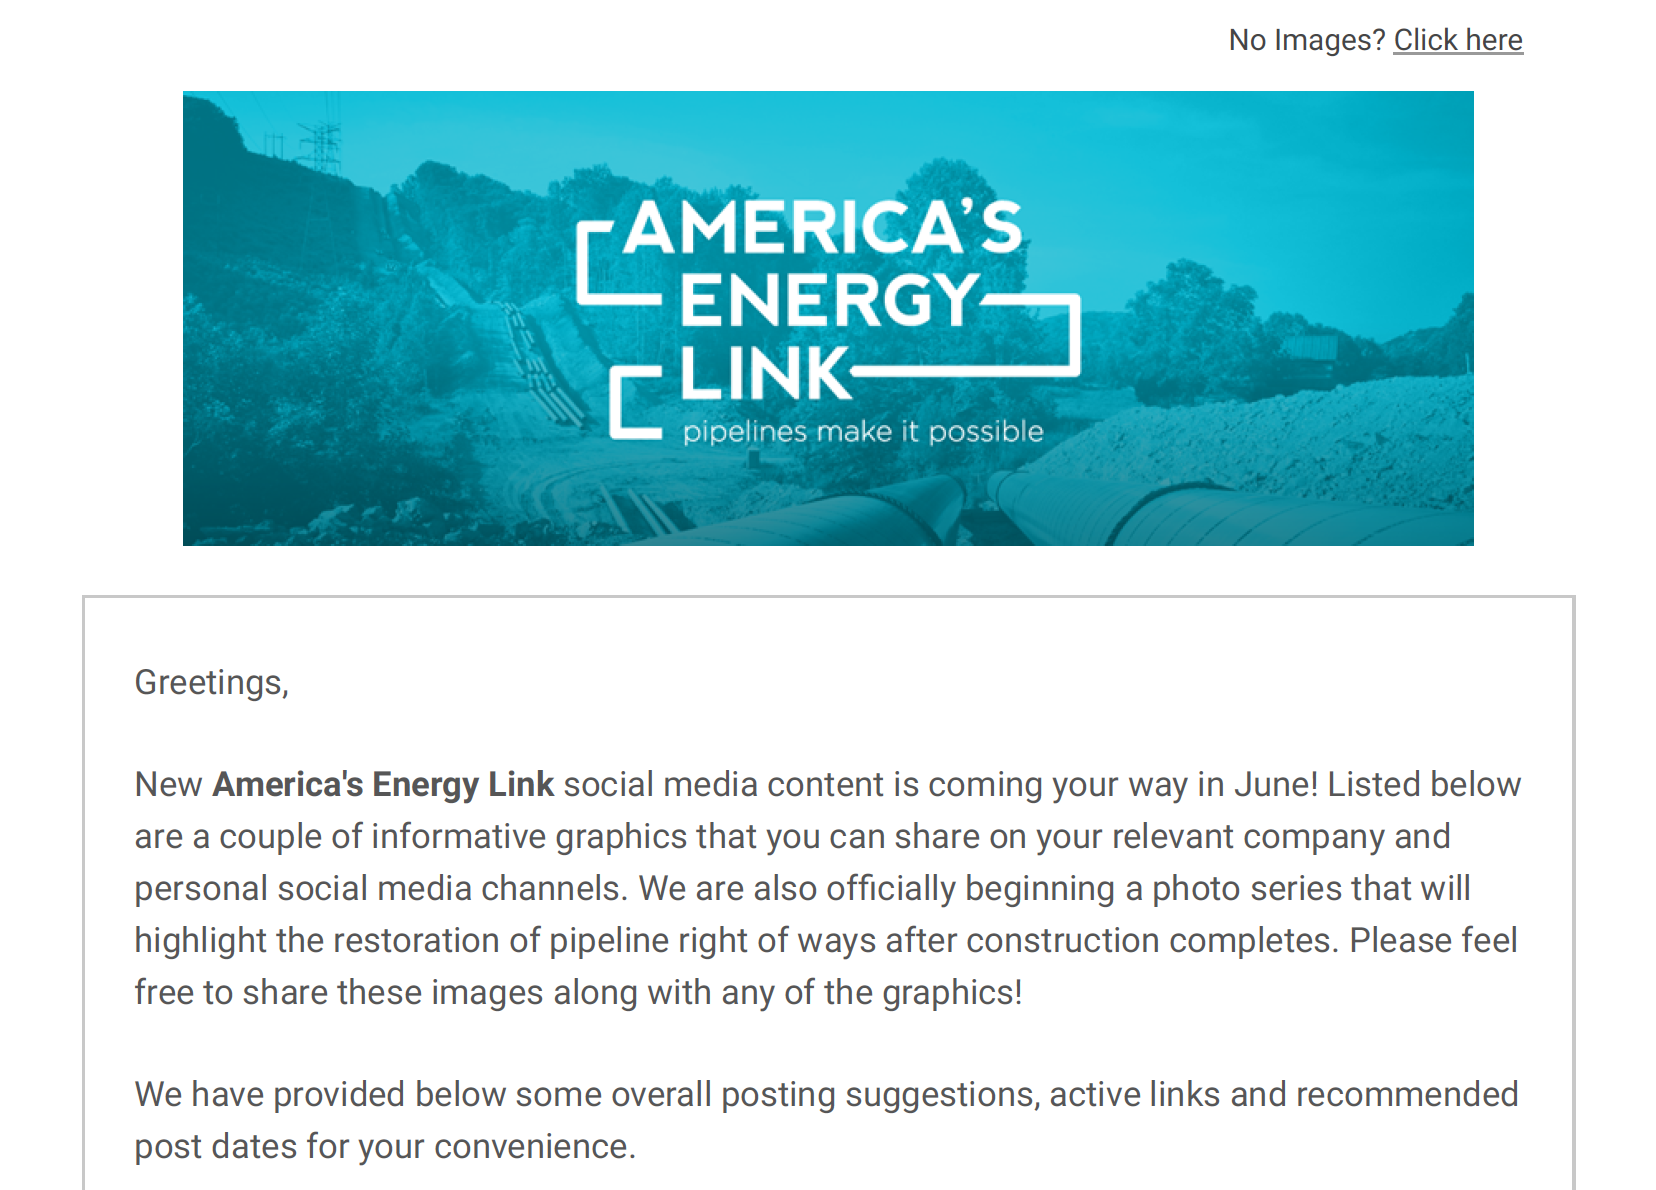 America's Energy Link June '16 Social Media Toolkit